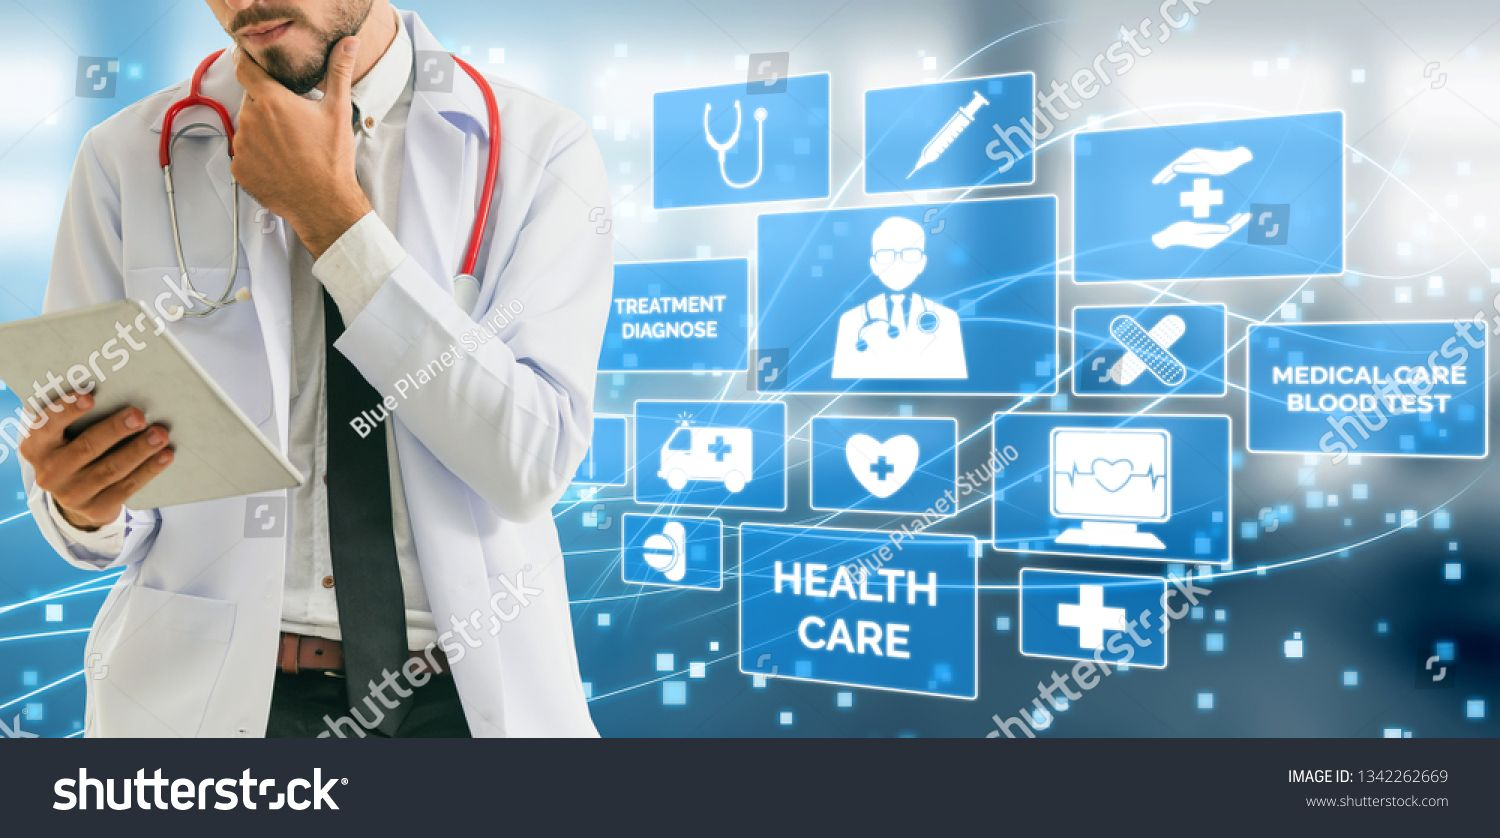 Medical Healthcare Concept Doctor In Hospital With Digital Medical Icons Graphic Banner Showing Symbol Of Medicine Medical Medical Icon Medical Health Care